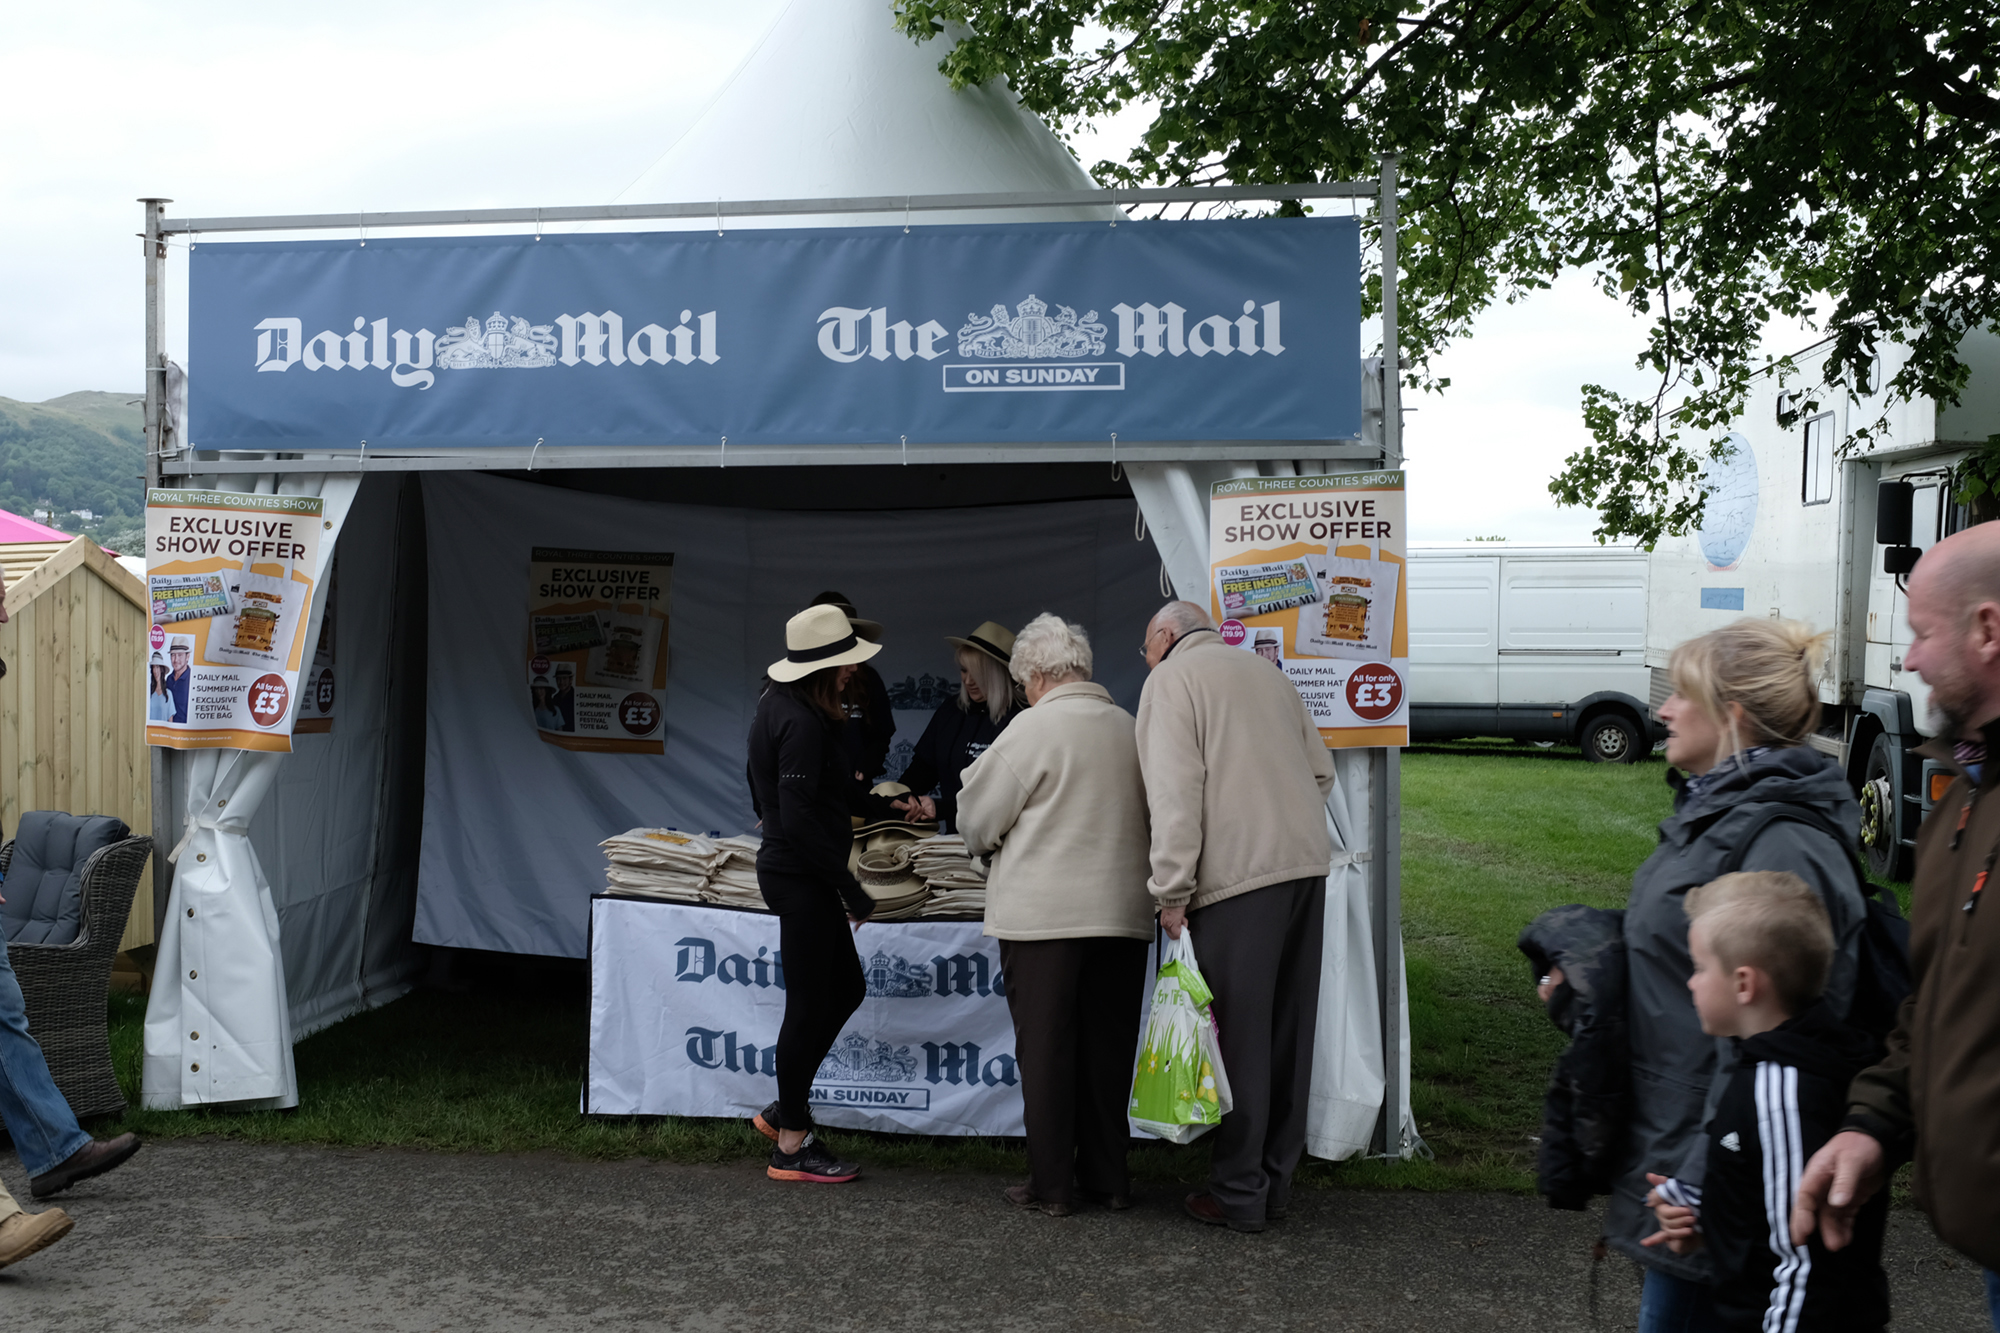 Photo of a beige-clad older couple showing interest in the Daily Mail tent